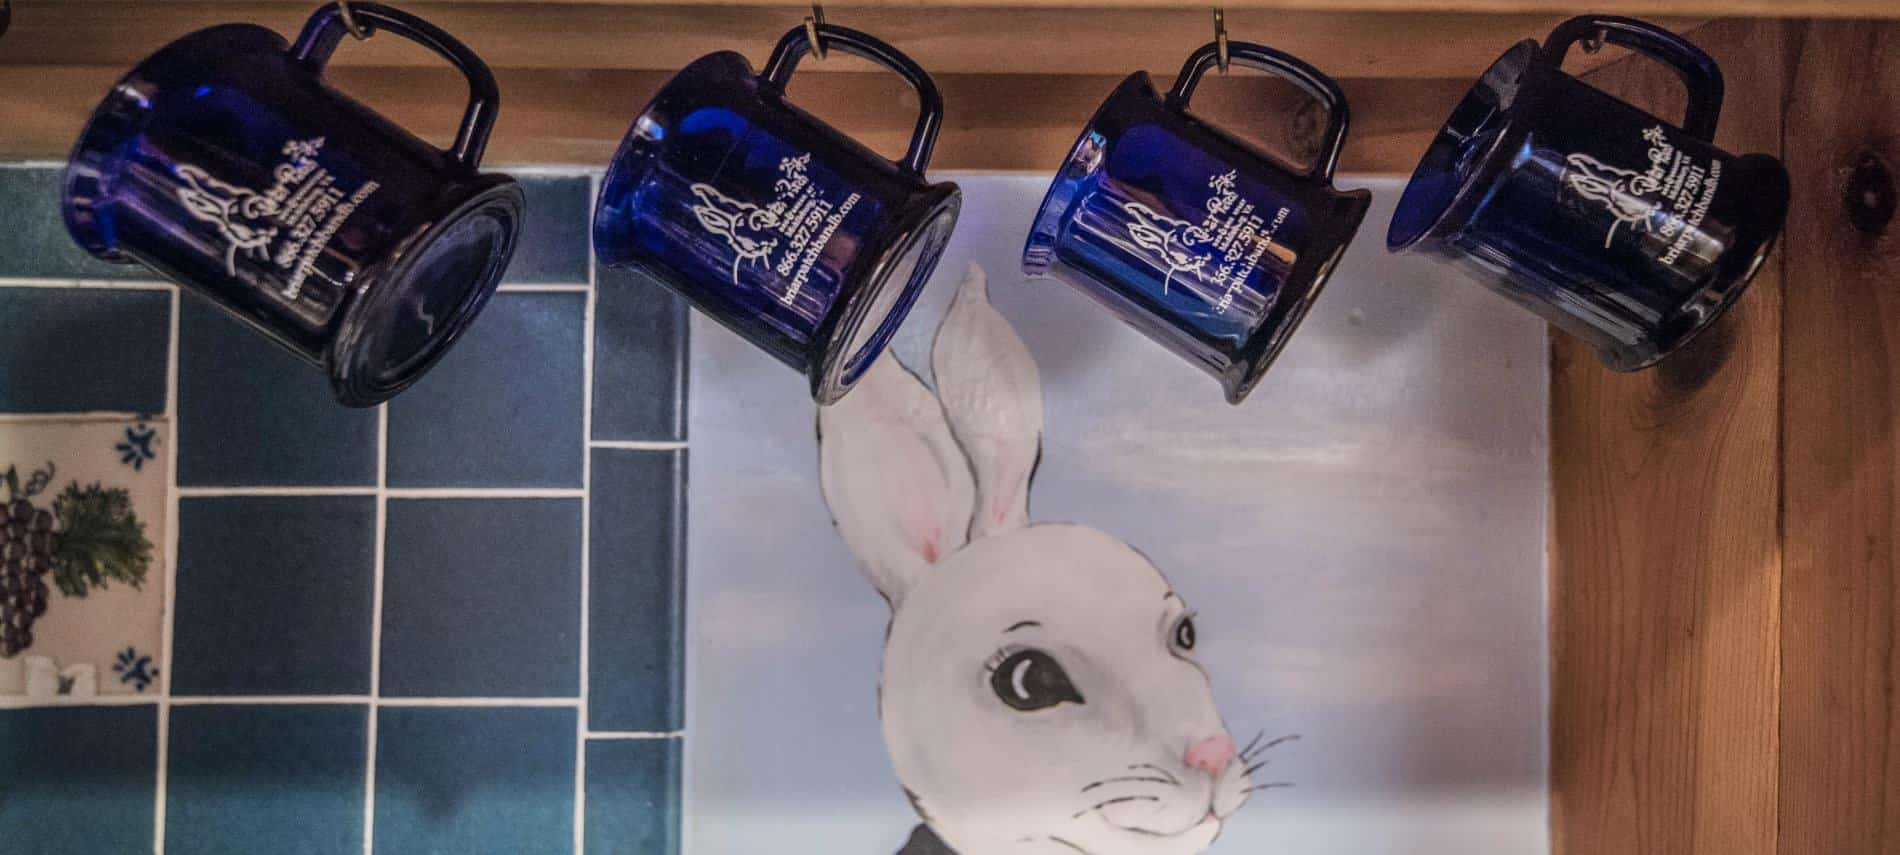 Dark blue mugs with Briar Patch logo hang on metal hooks in front of a white bunny face